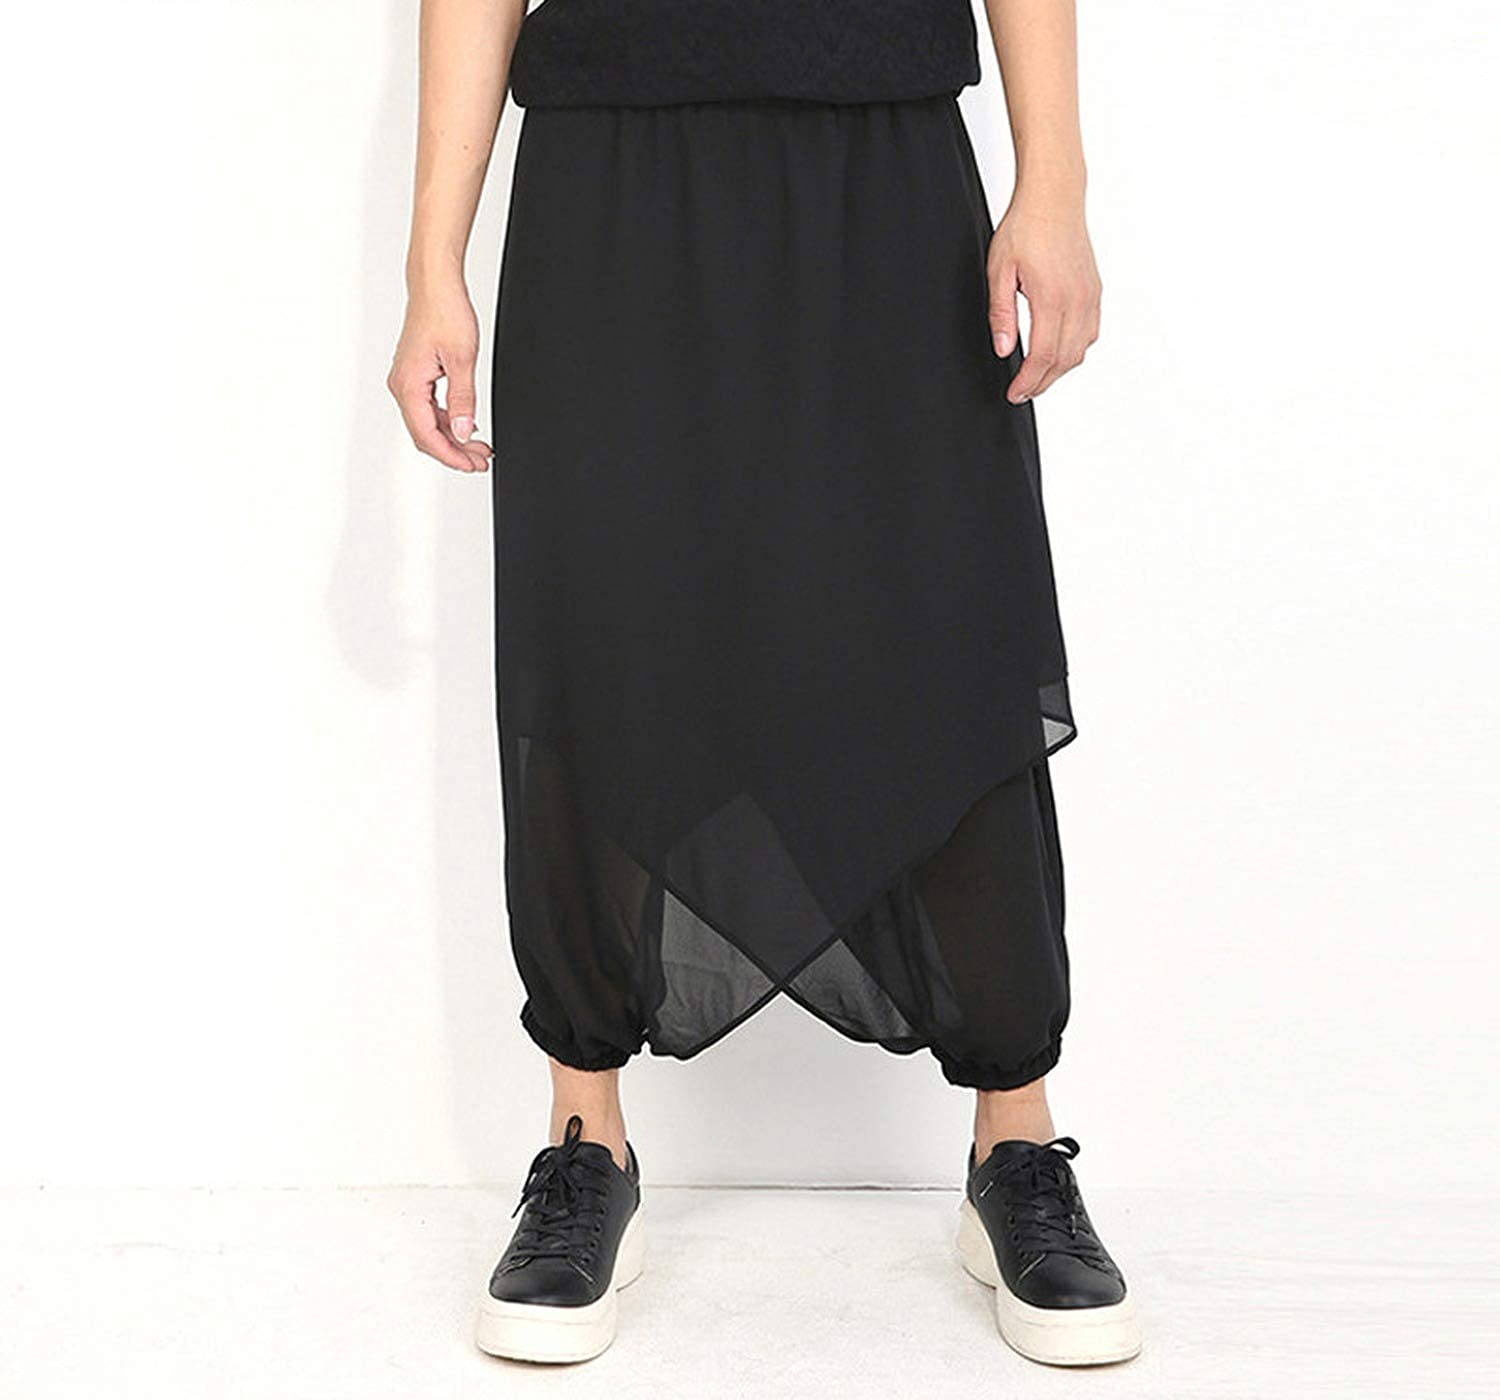 Length Summer Cool Big Size 5XL Cross-Pants Pants Men Chiffon Women Male Hiphop Pants Loose Fit Drop Crotch